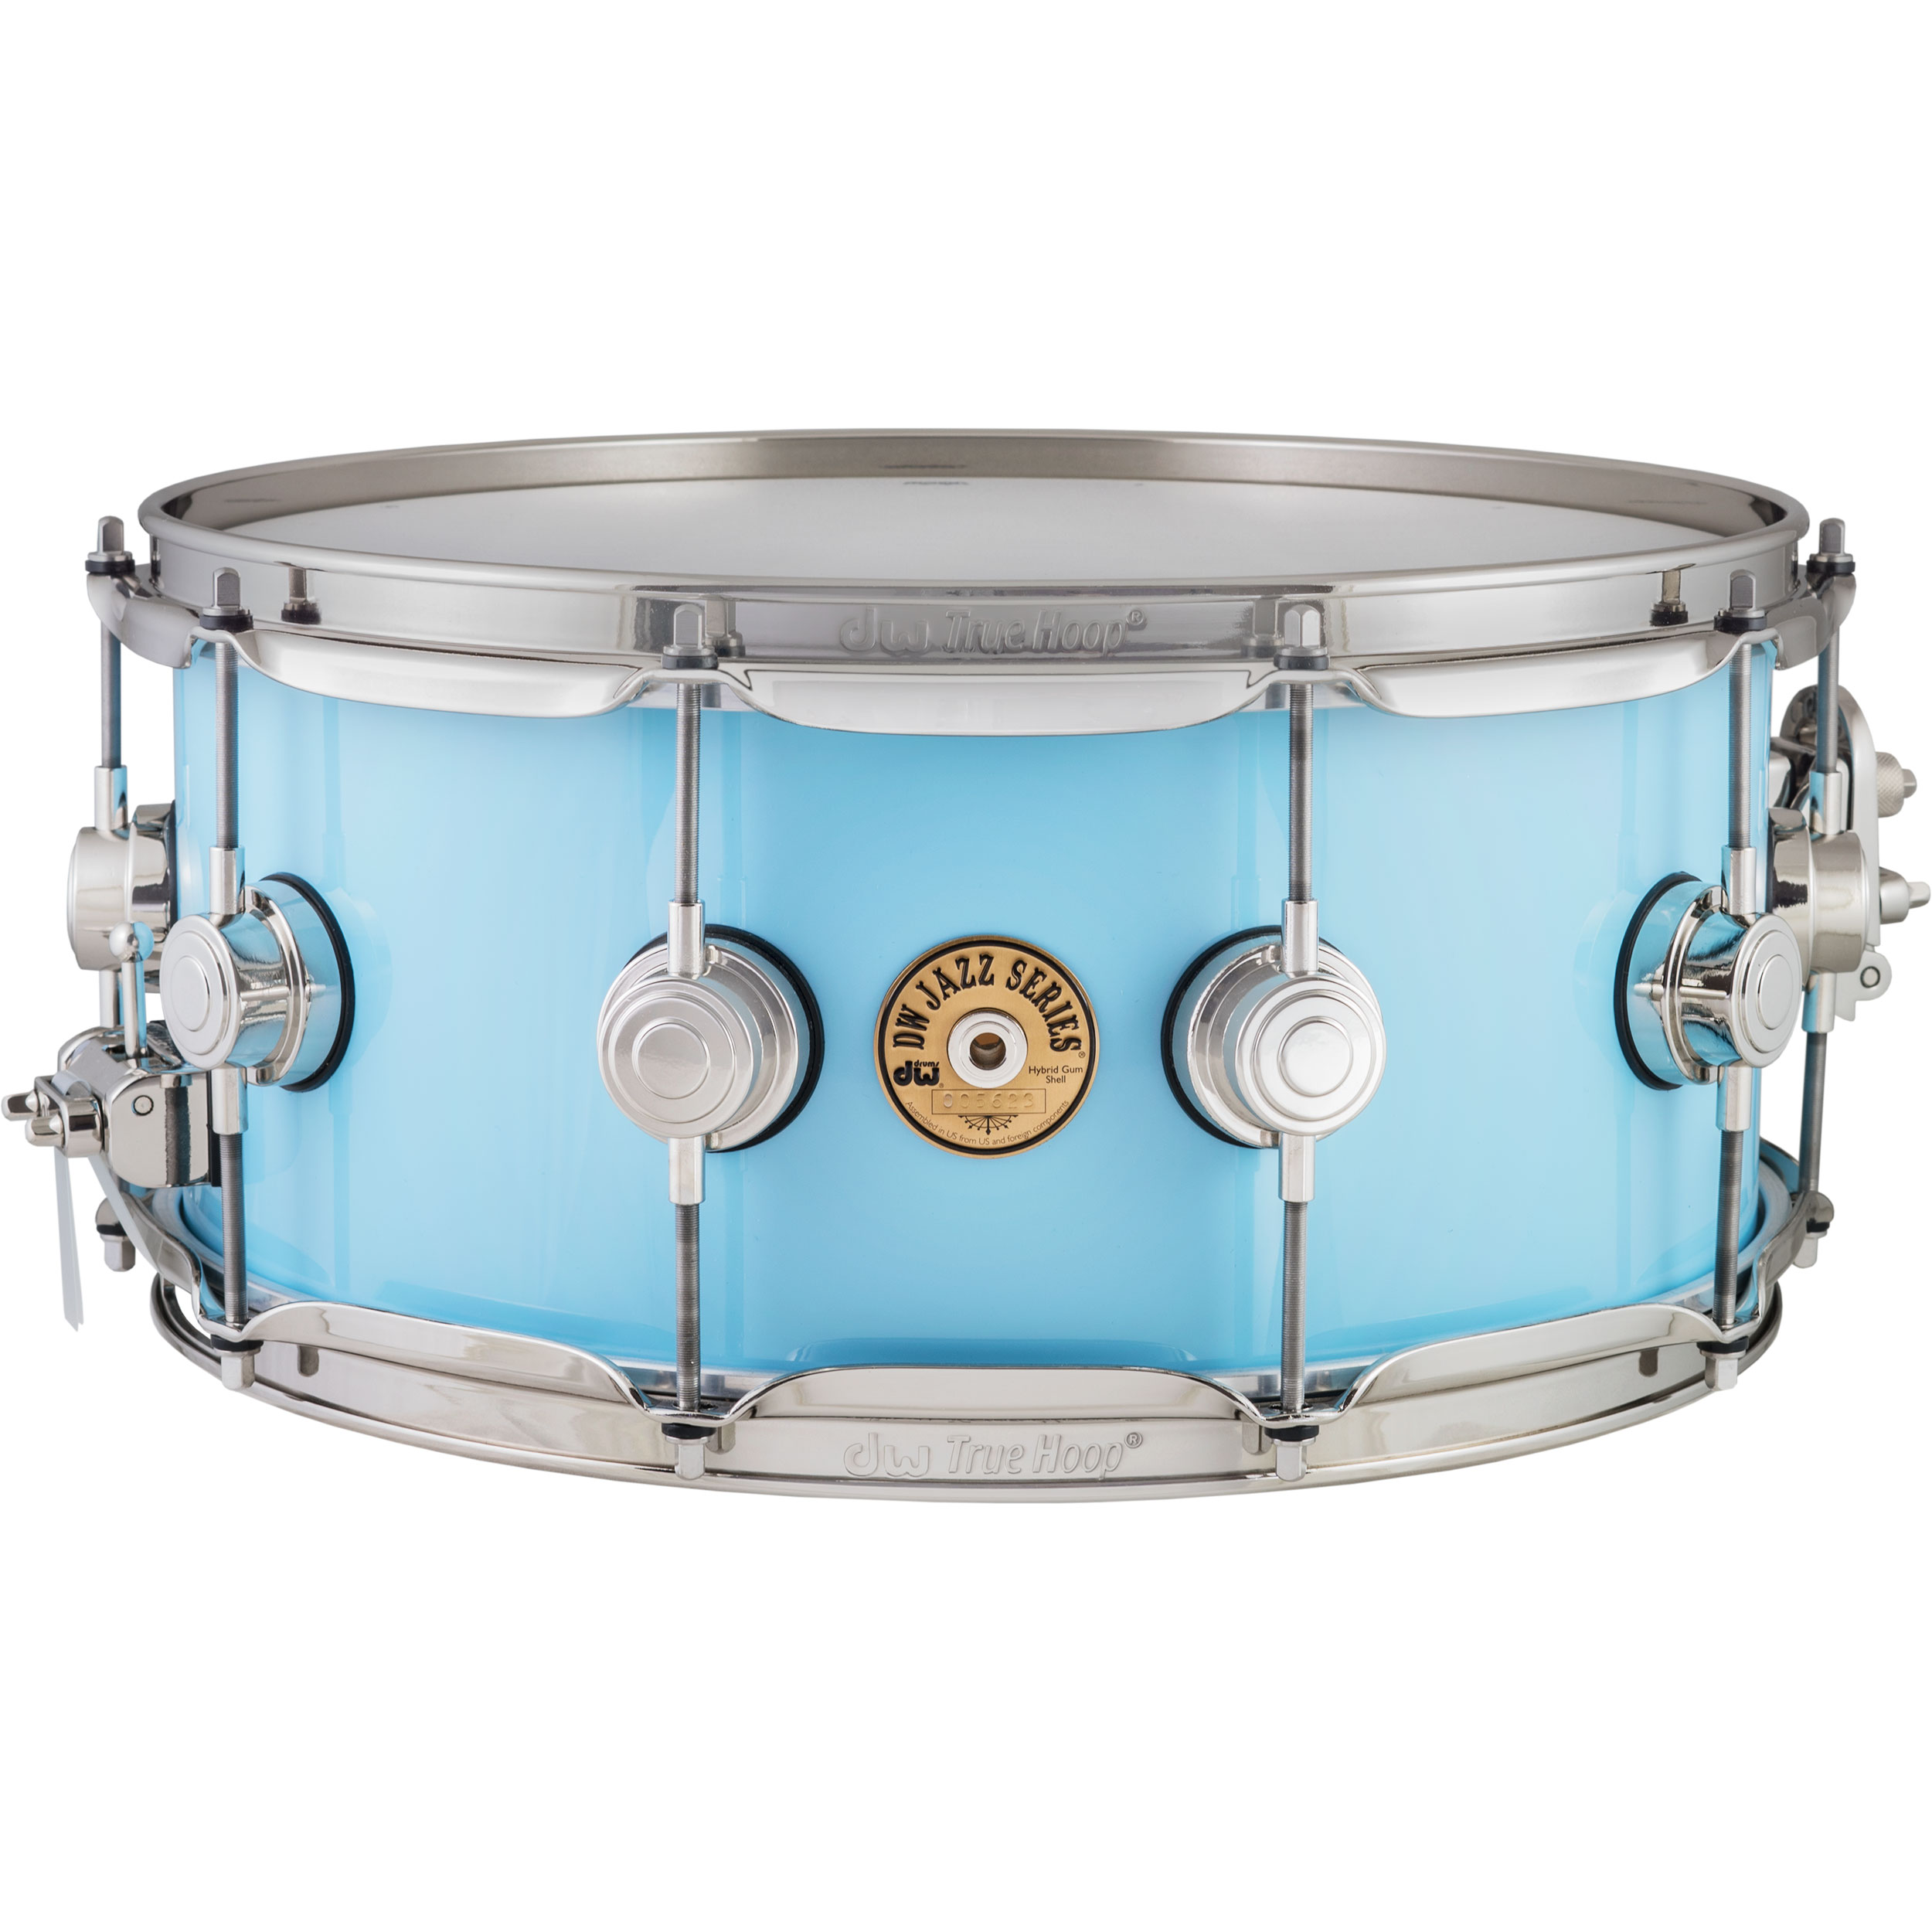 "DW 6"" x 14"" Jazz Series Gum/Maple Snare Drum in Robin"